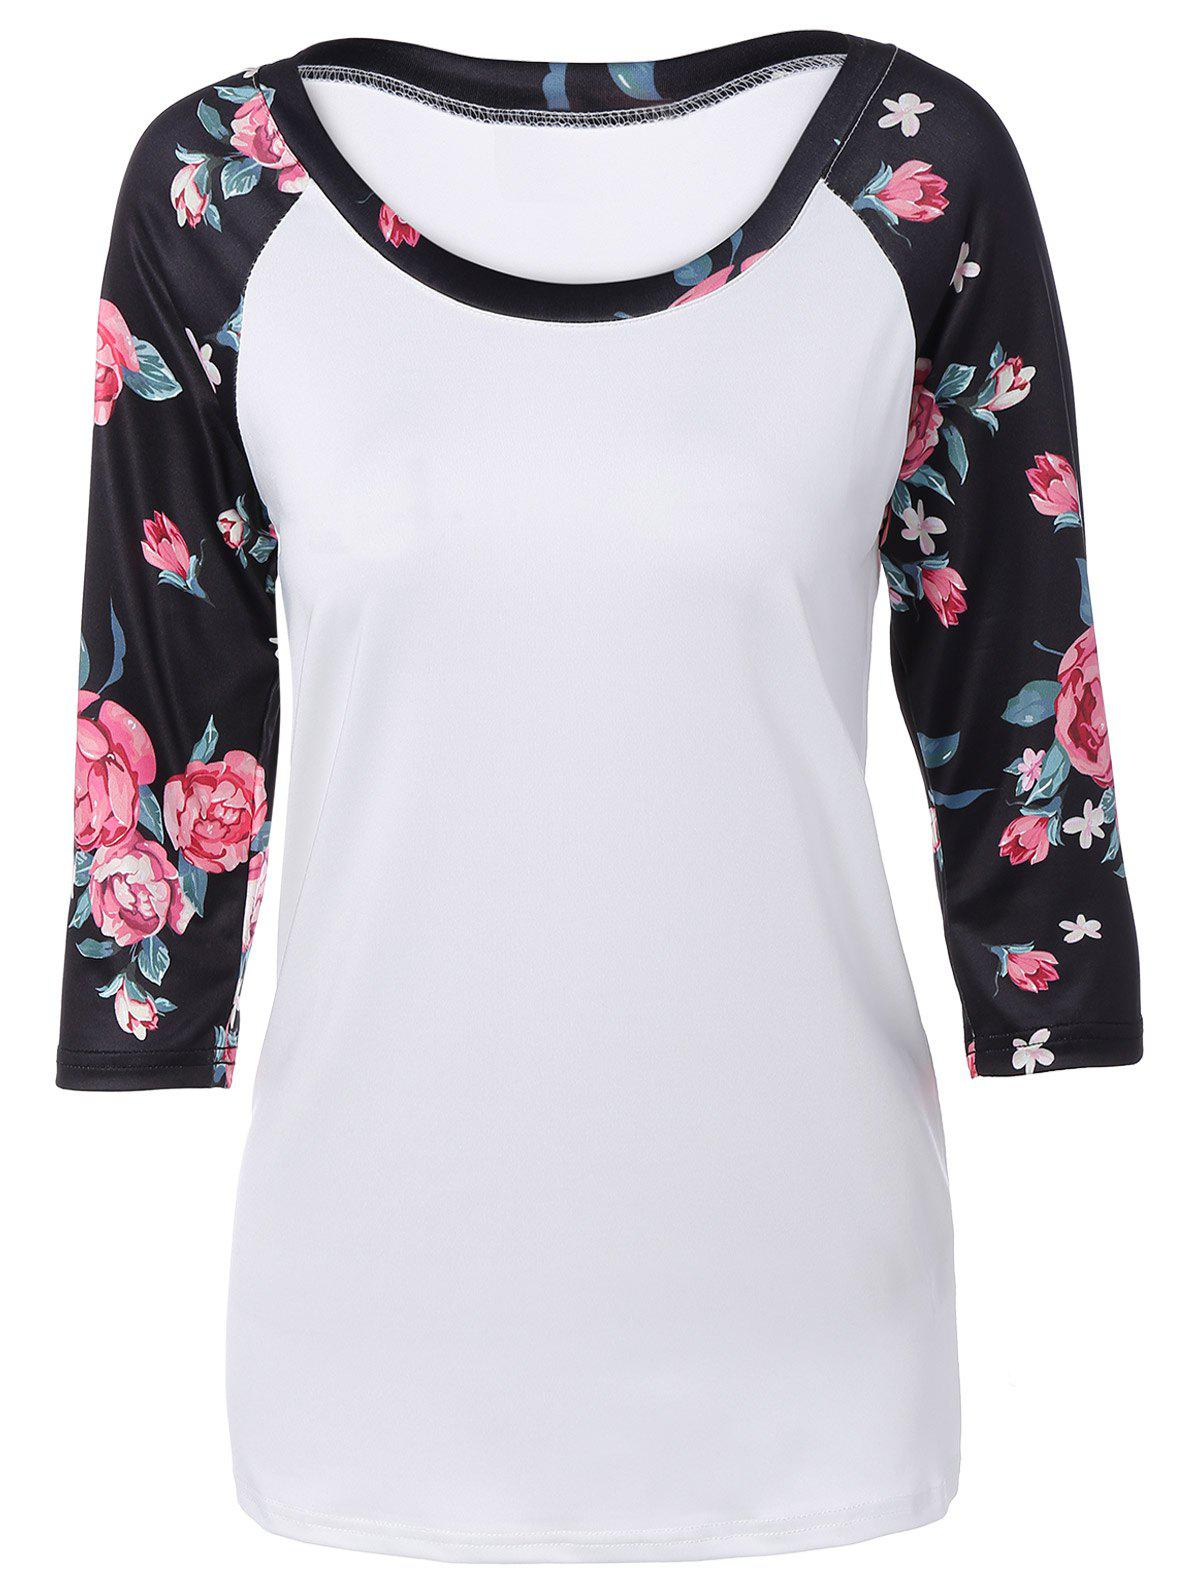 Autumn Floral Print Sleeve Casual T-Shirt - WHITE S